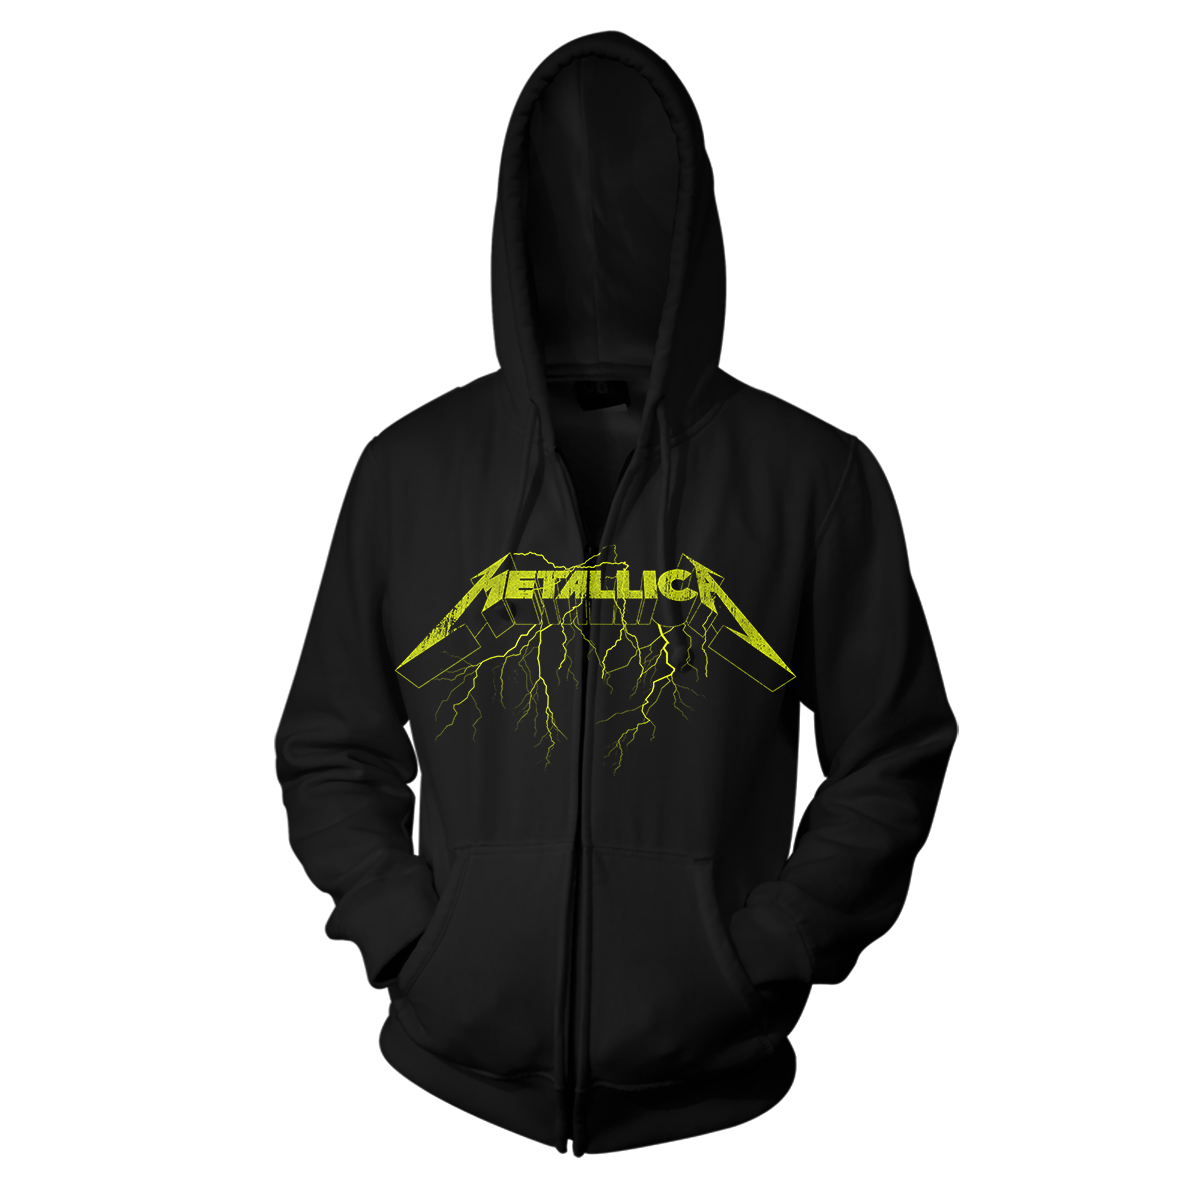 Splatter Lightning - Black Zip Hood - Metallica